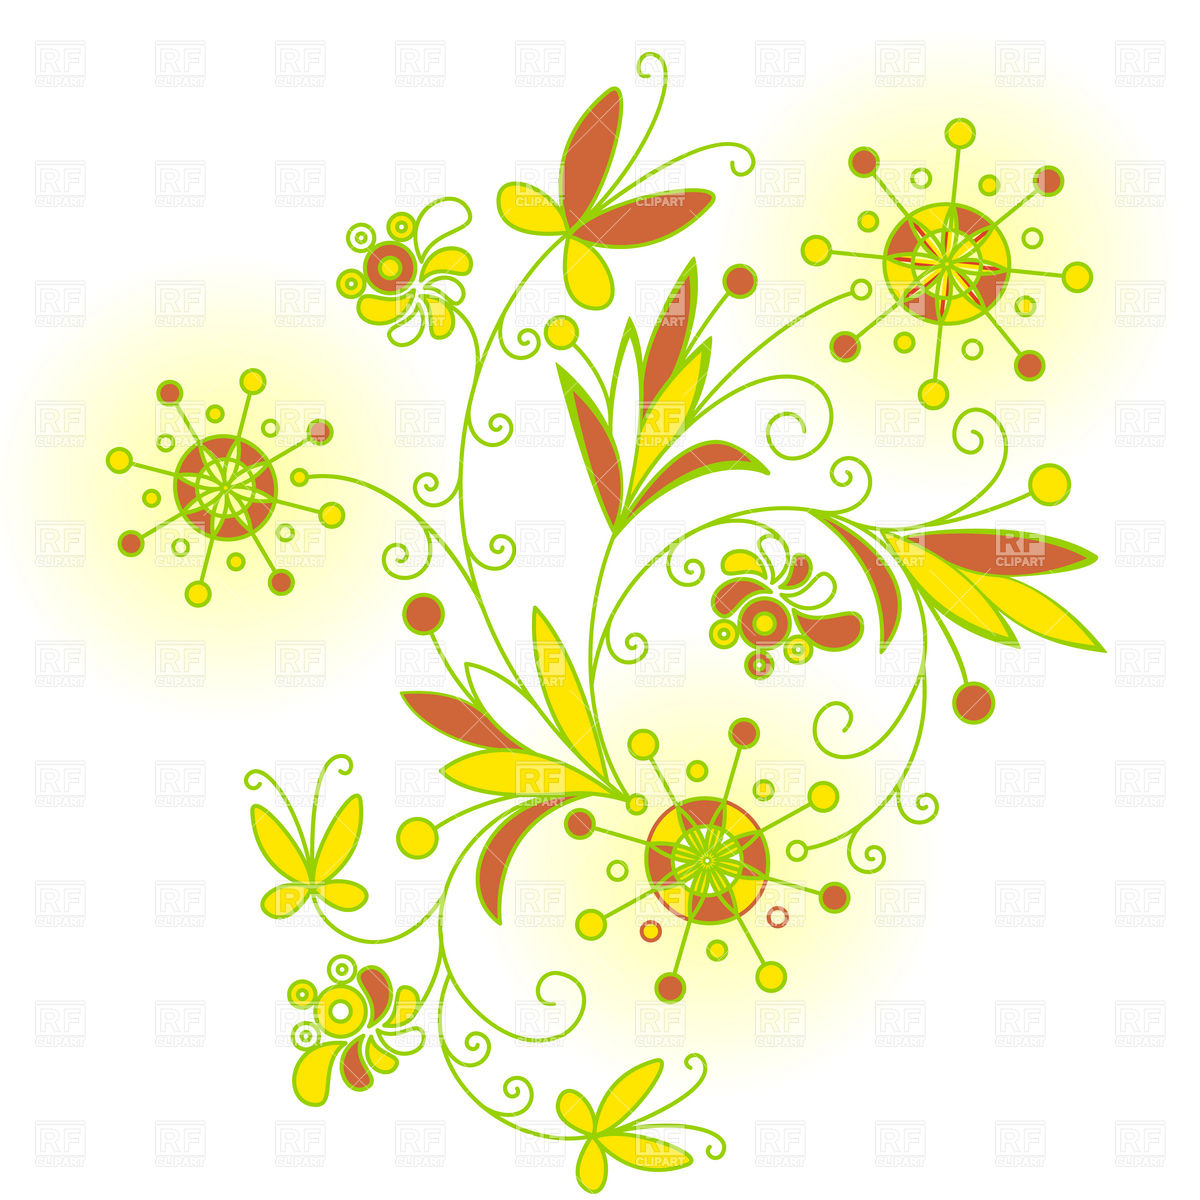 Abstract Flower Floral Design